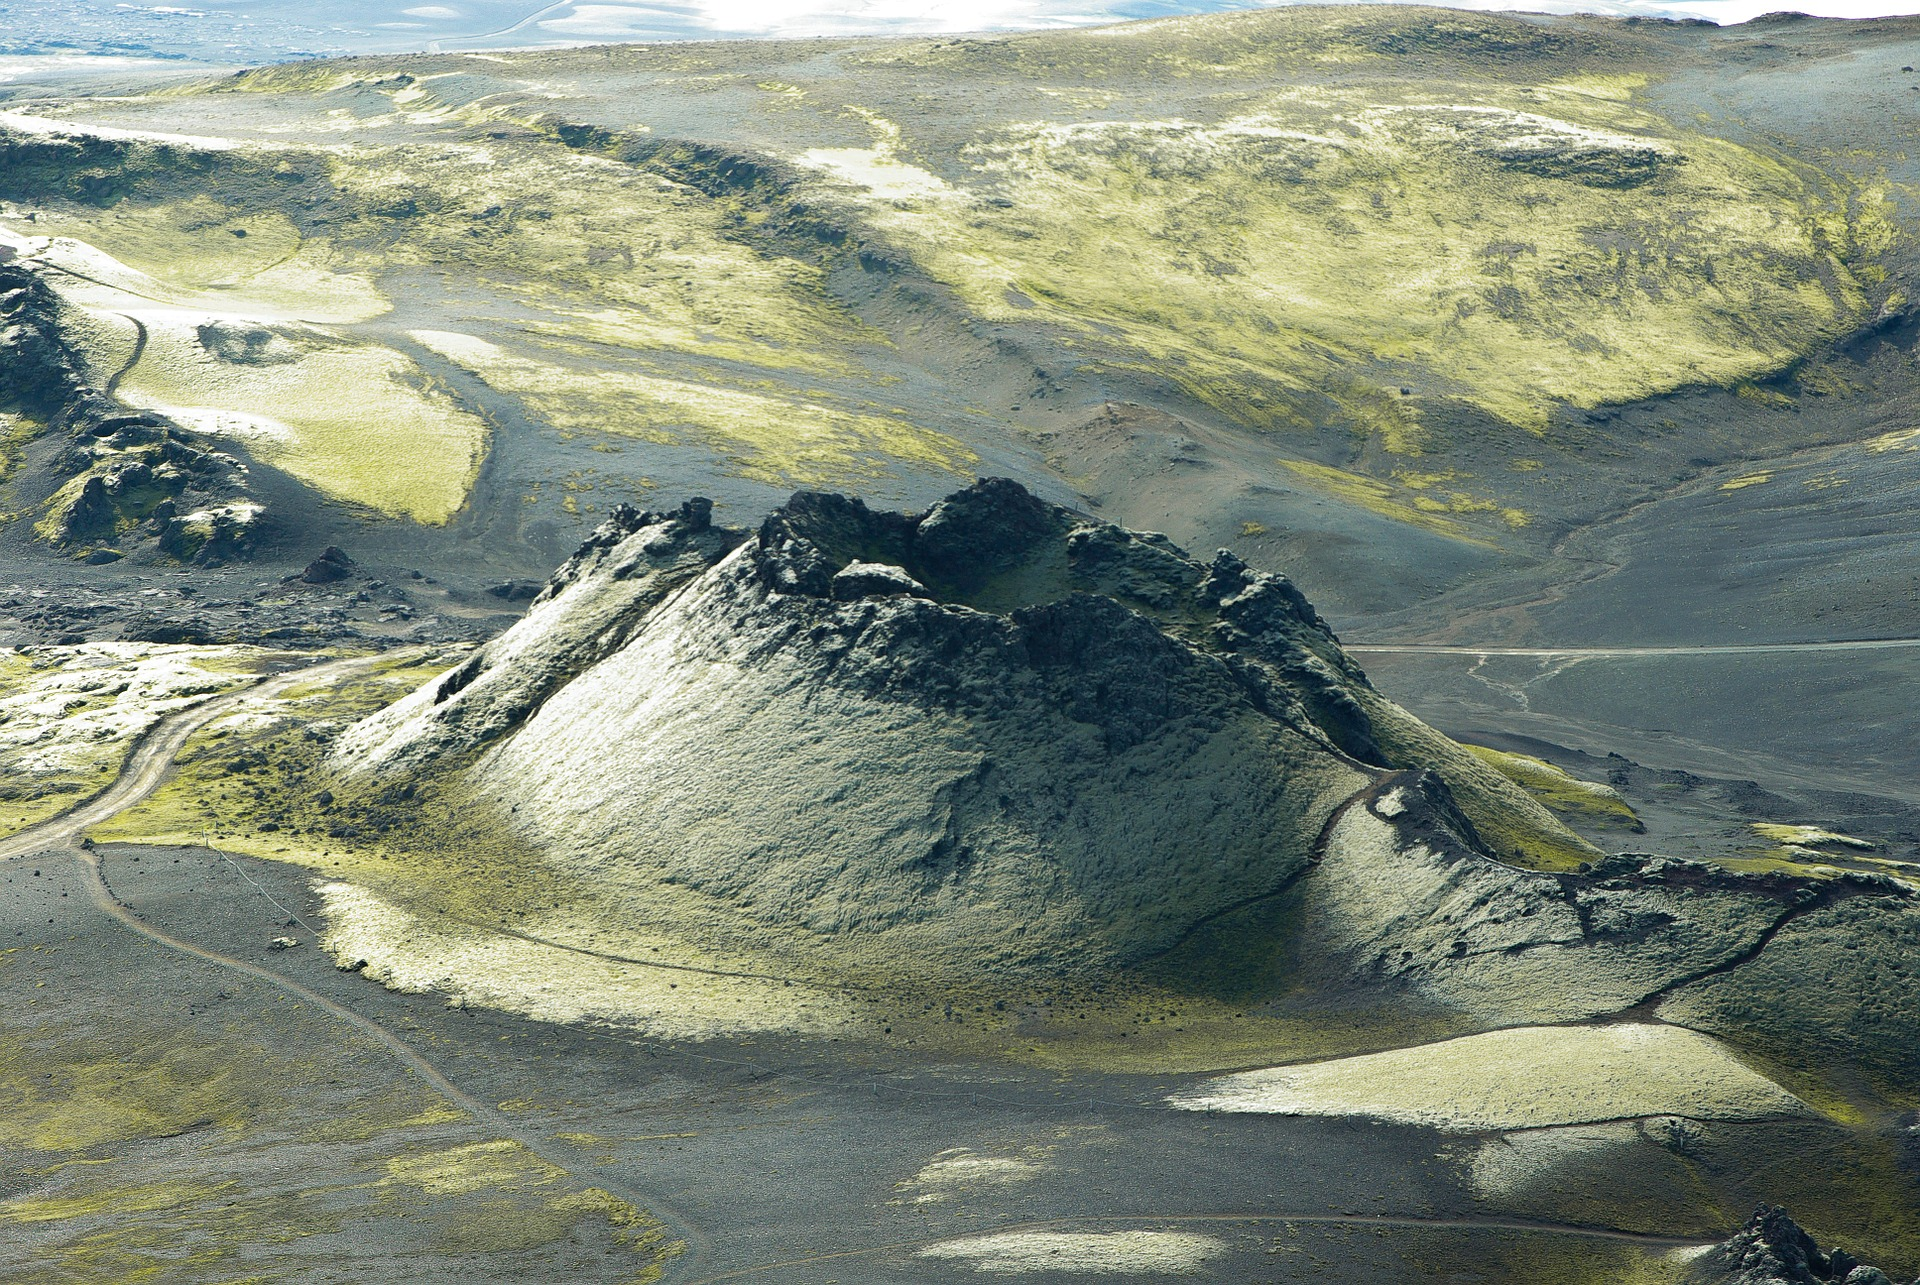 Photograph of a volcanic crater from Laki, southern Iceland